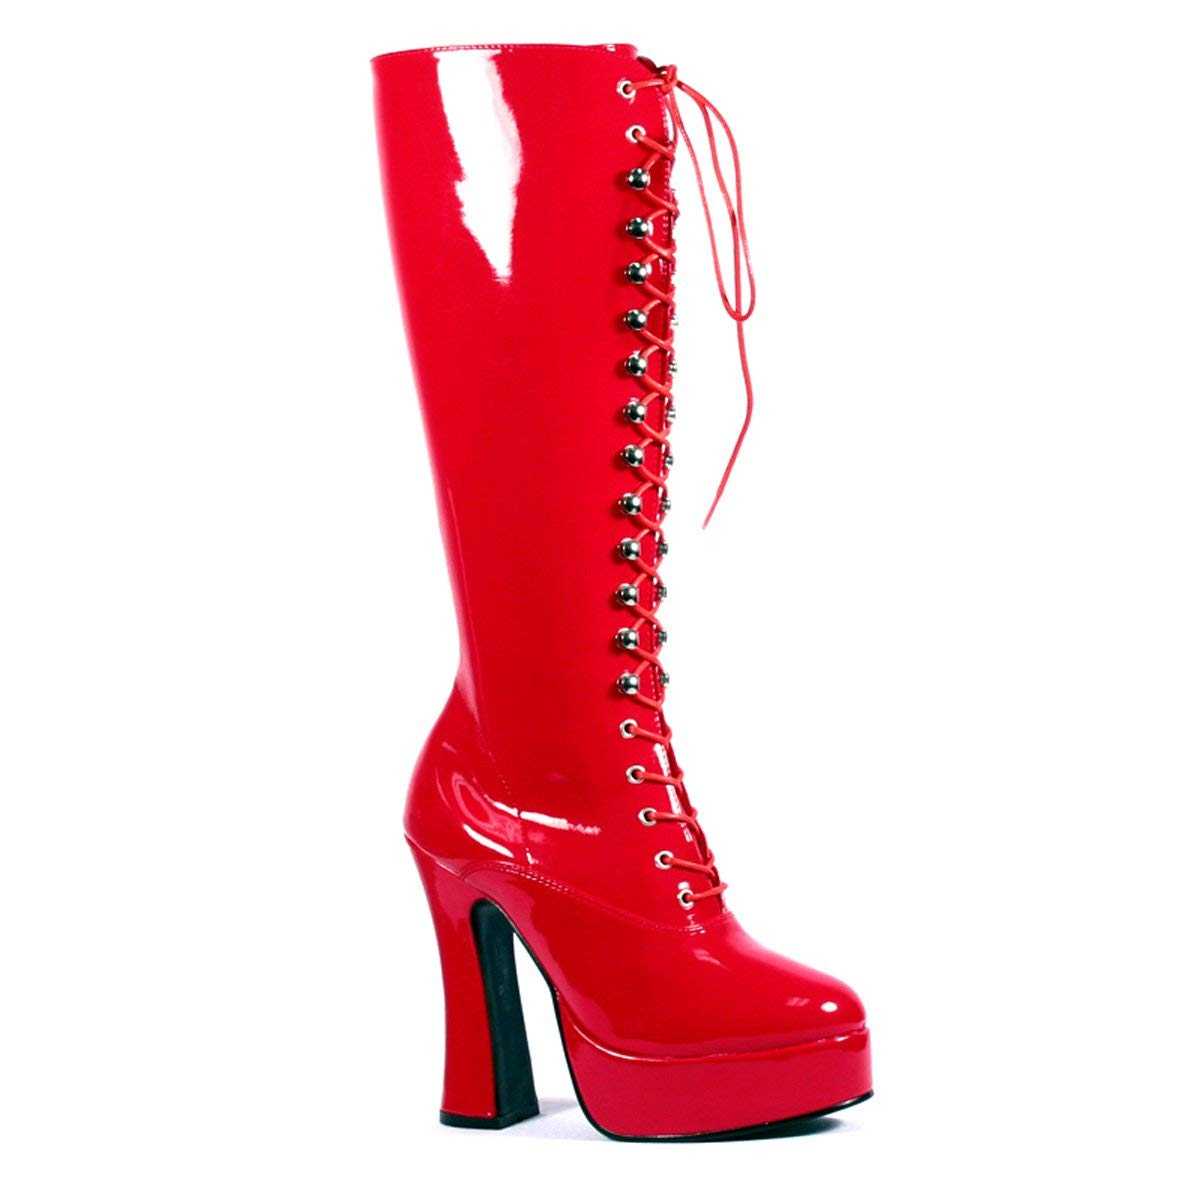 726be31351b Get Quotations · Summitfashions 5 Inch Sexy Knee High Boots With Zipper  Chunky Heel Platform Red